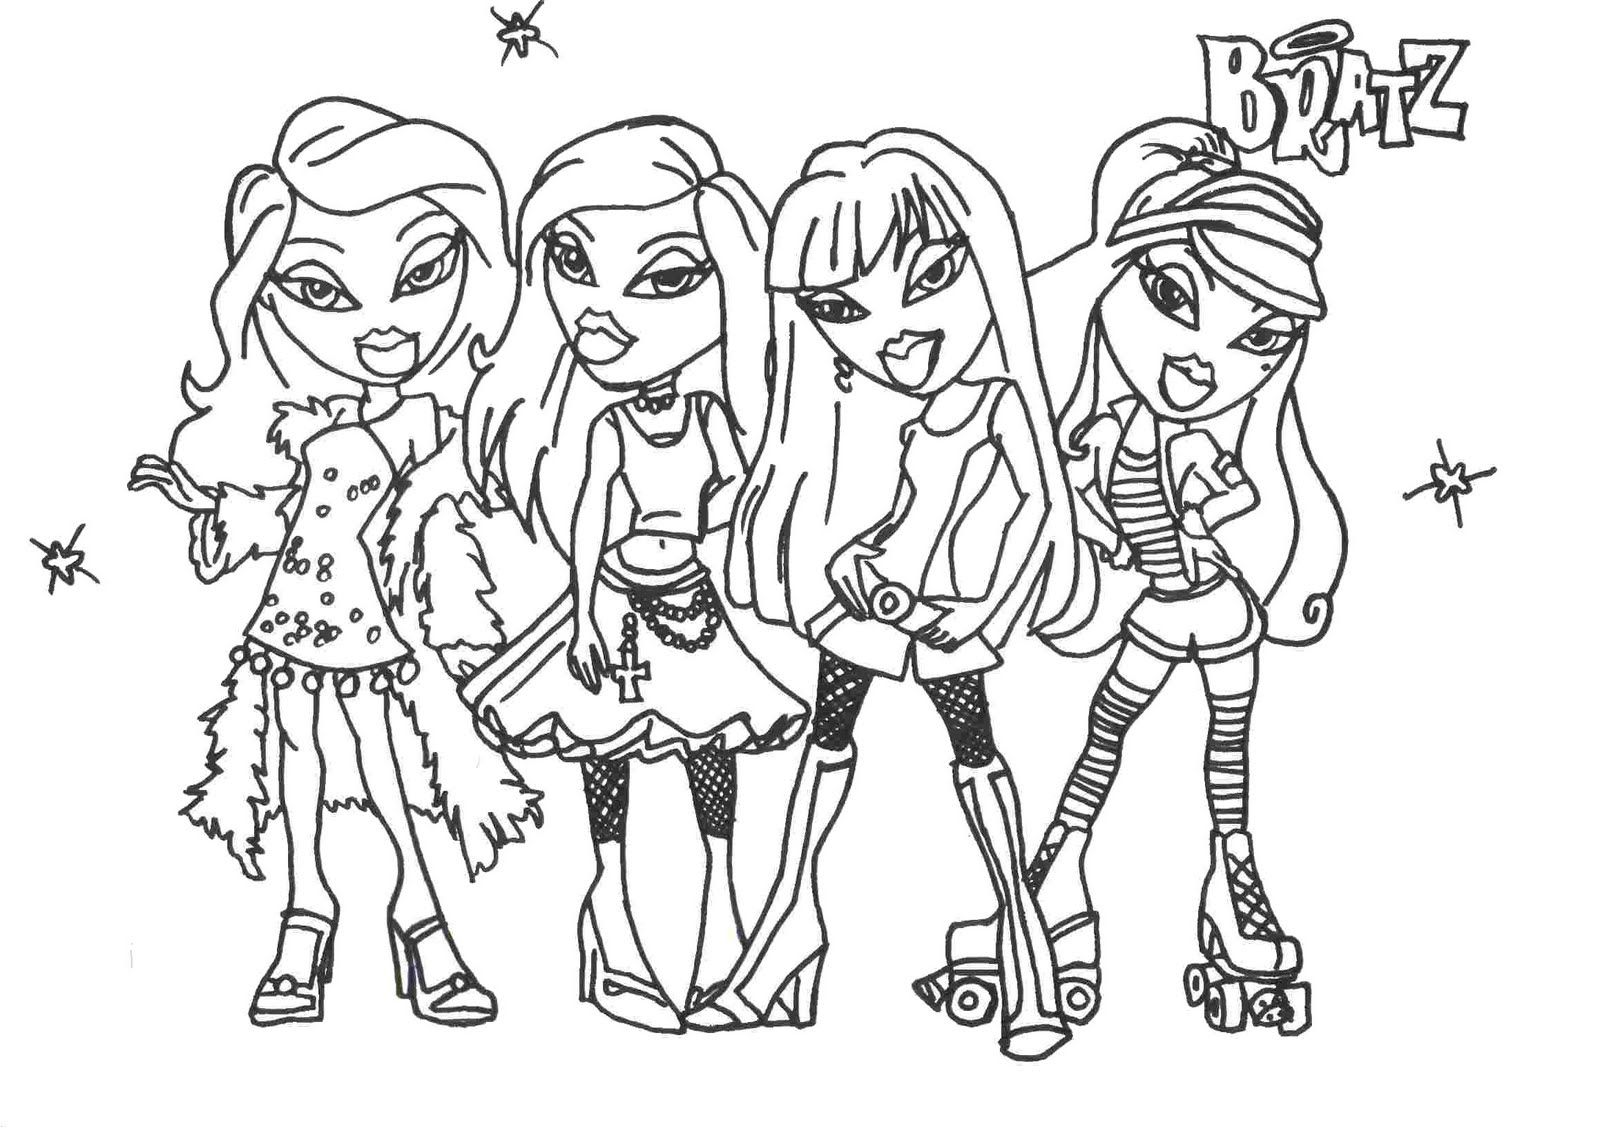 Pr princess coloring sheet - Bratz Glamor Girls Coloring Pages Disney Princess Coloring Pages